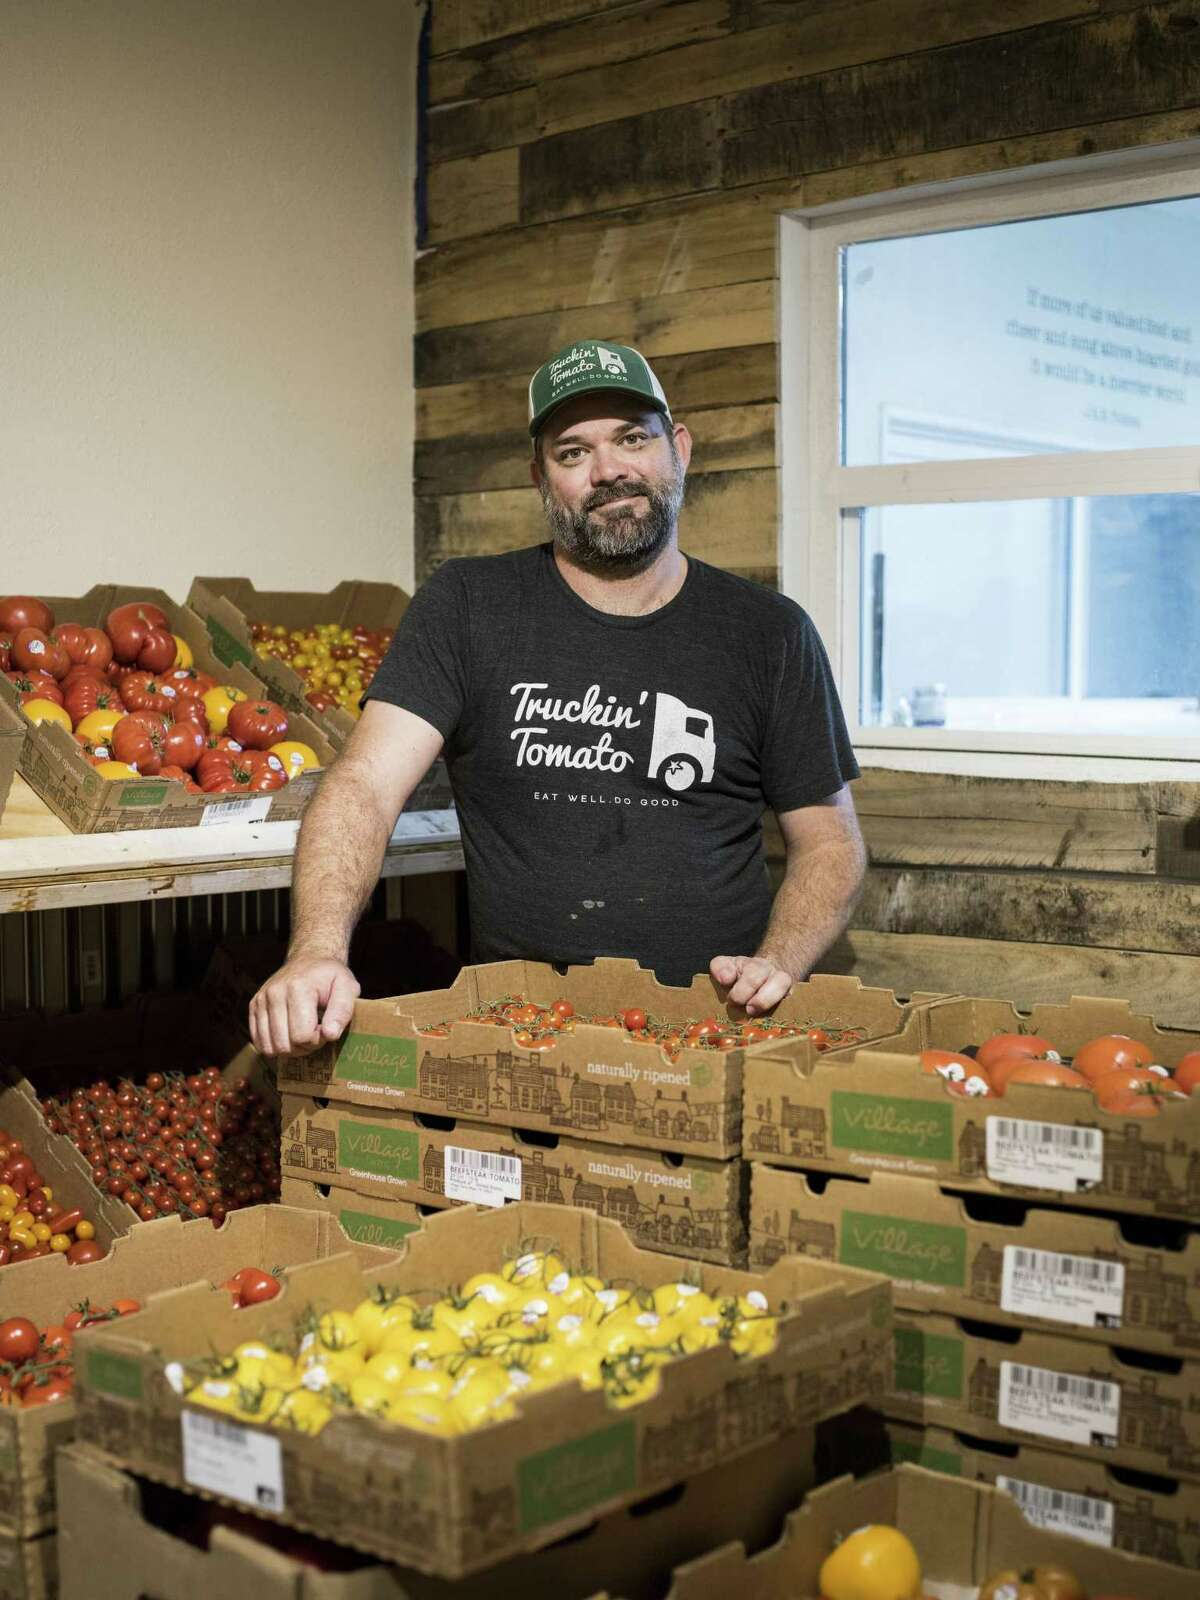 Bryan Pape of Trukin' Tomato poses for a portrait along with his produce for sale during the midweek market.